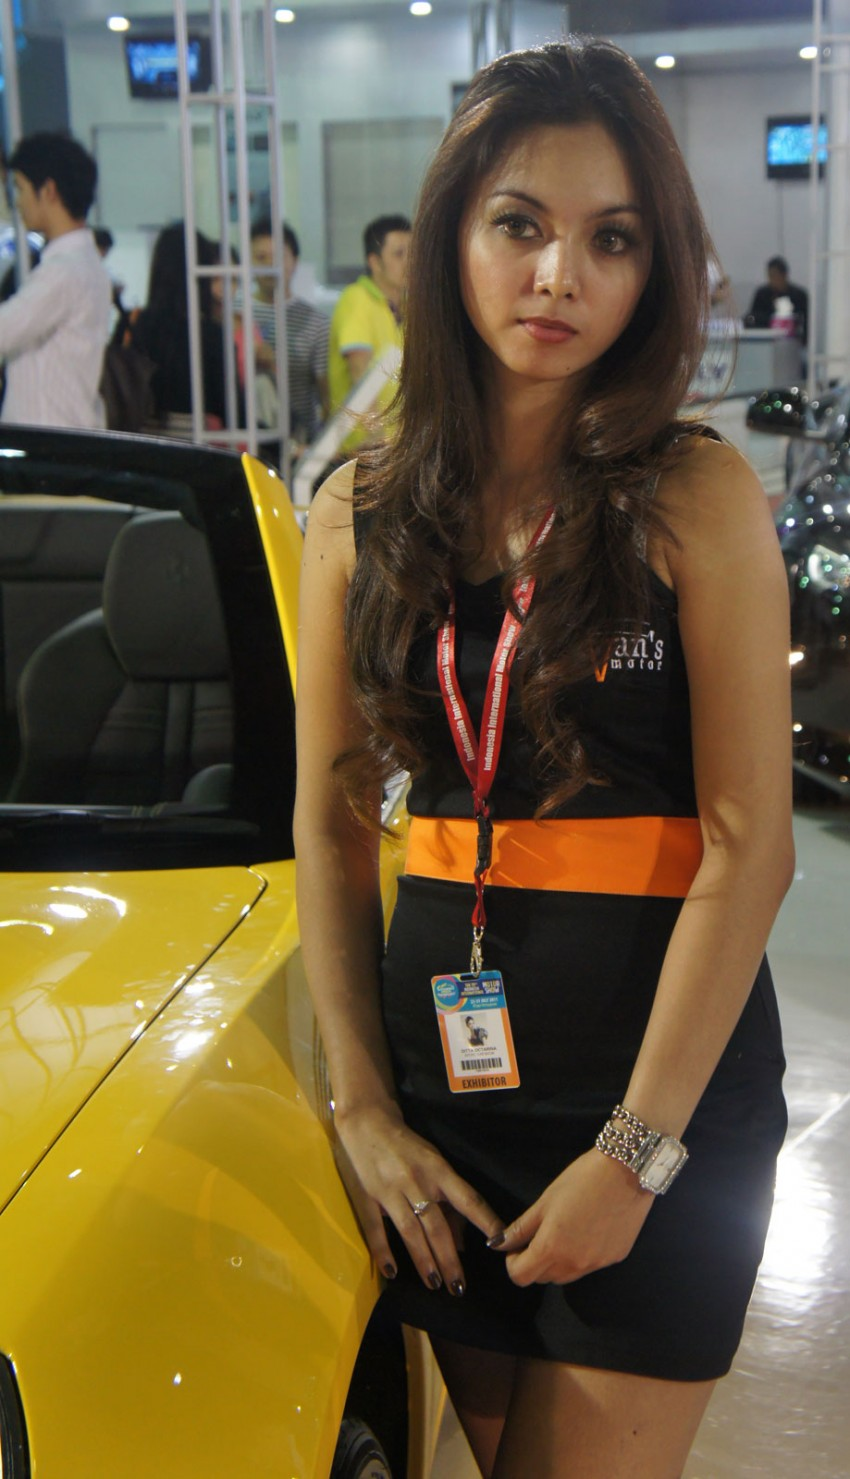 The ladies of IIMS – 100 pics for you to feast your eyes on! Image #65863